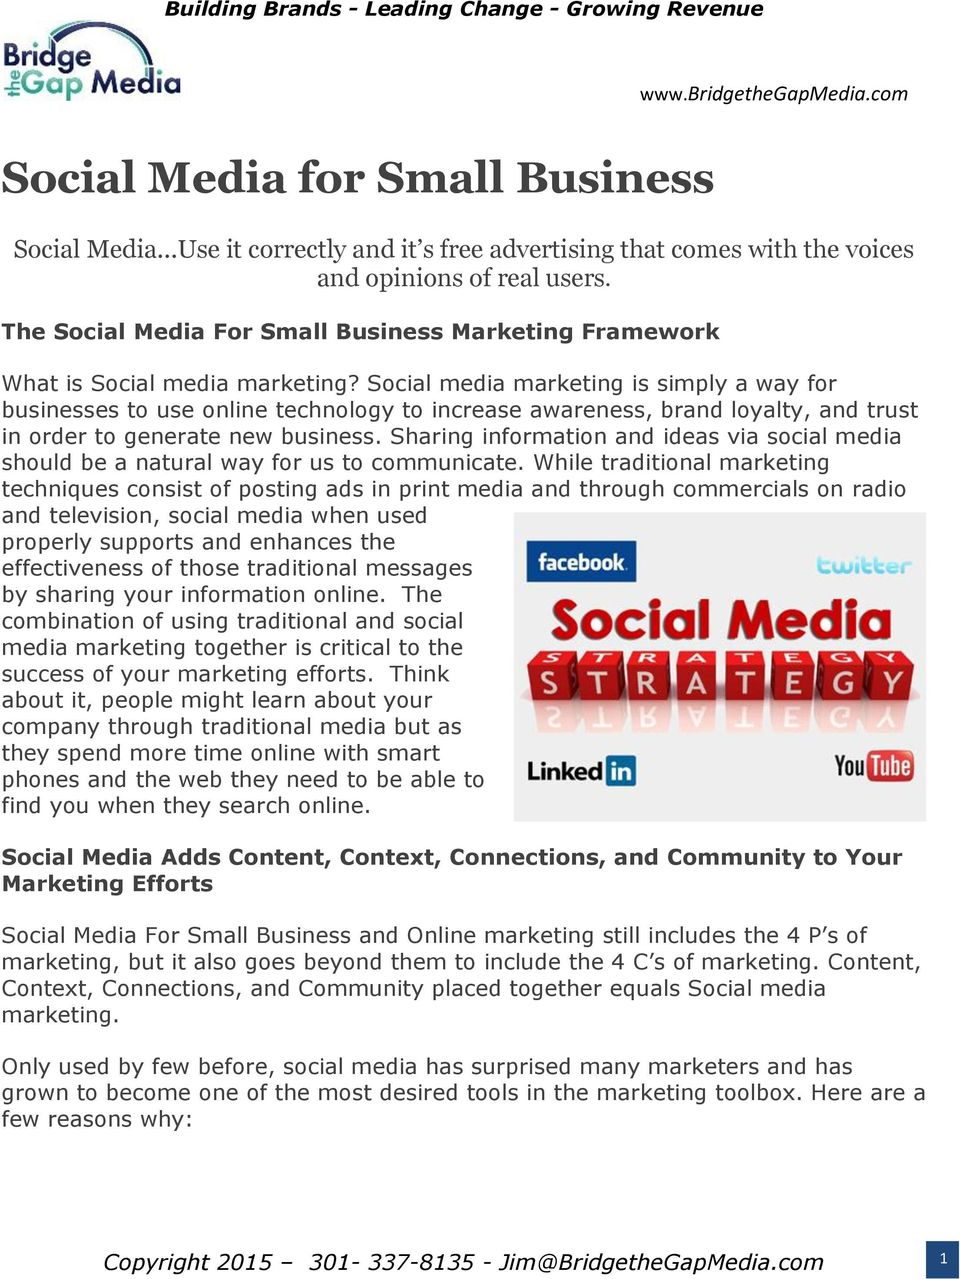 Social media marketing is simply a way for businesses to use online technology to increase awareness, brand loyalty, and trust in order to generate new business.